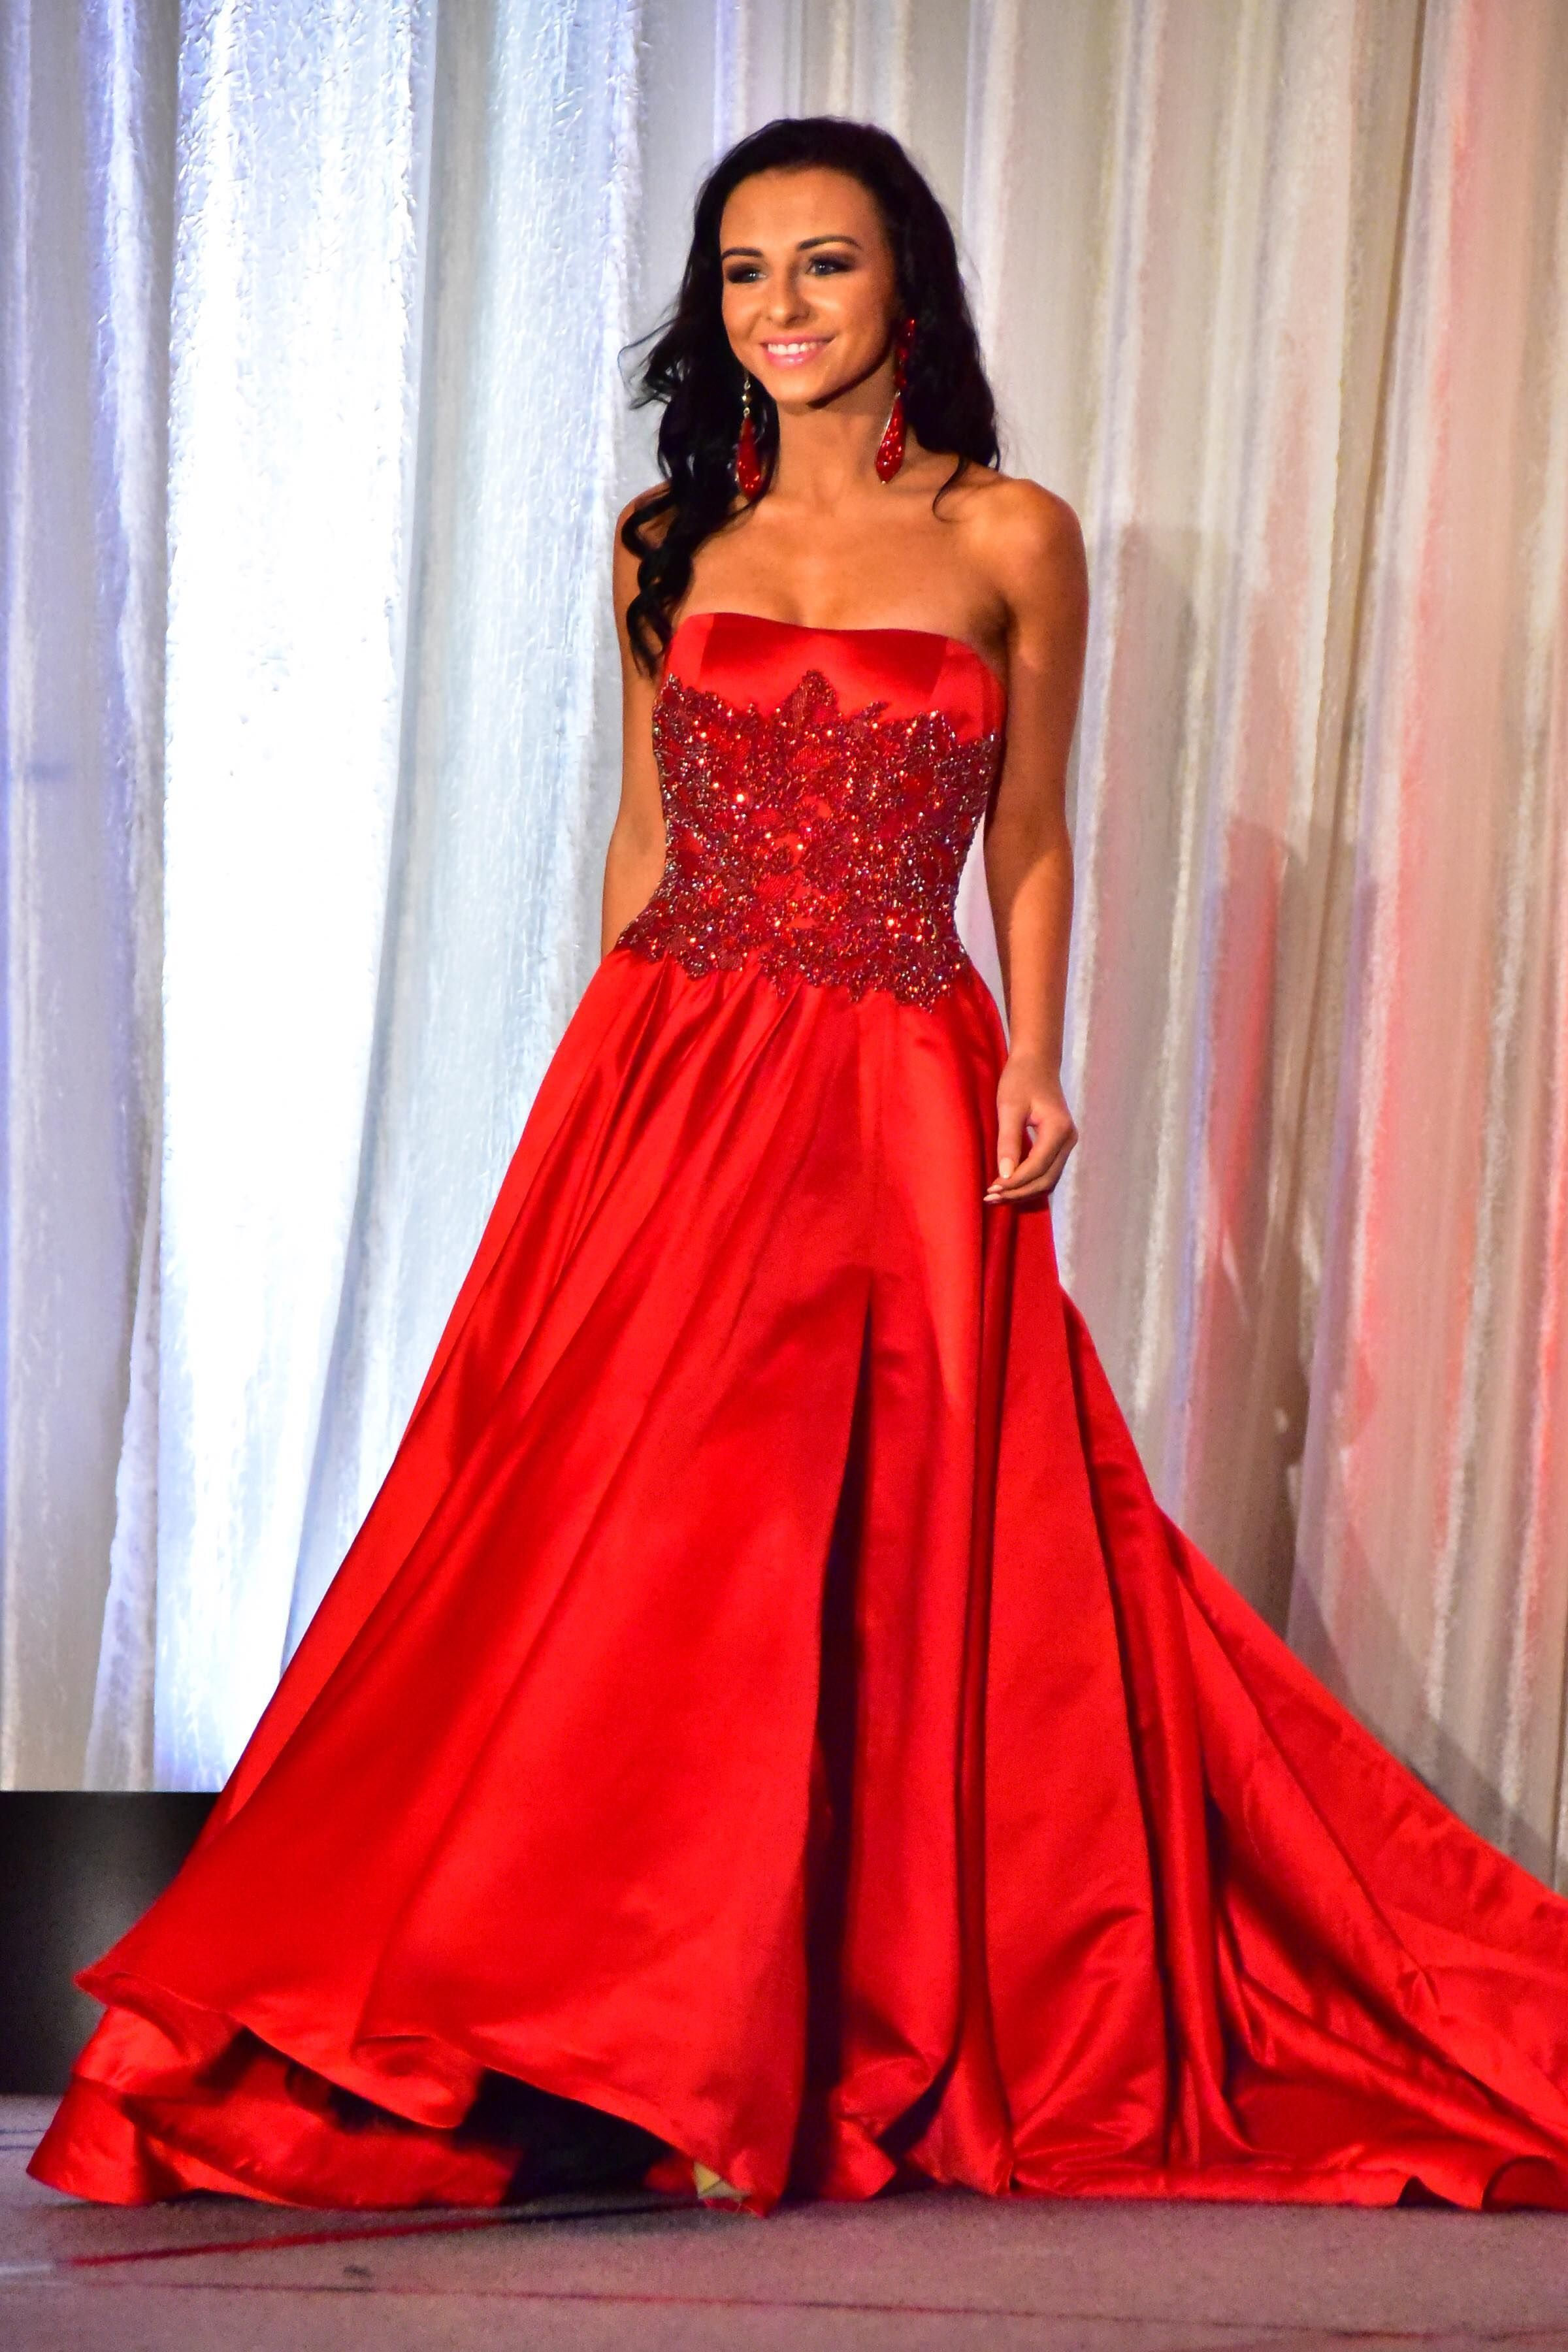 Red pageant gown worn at American pageants | Dresses | Pinterest ...